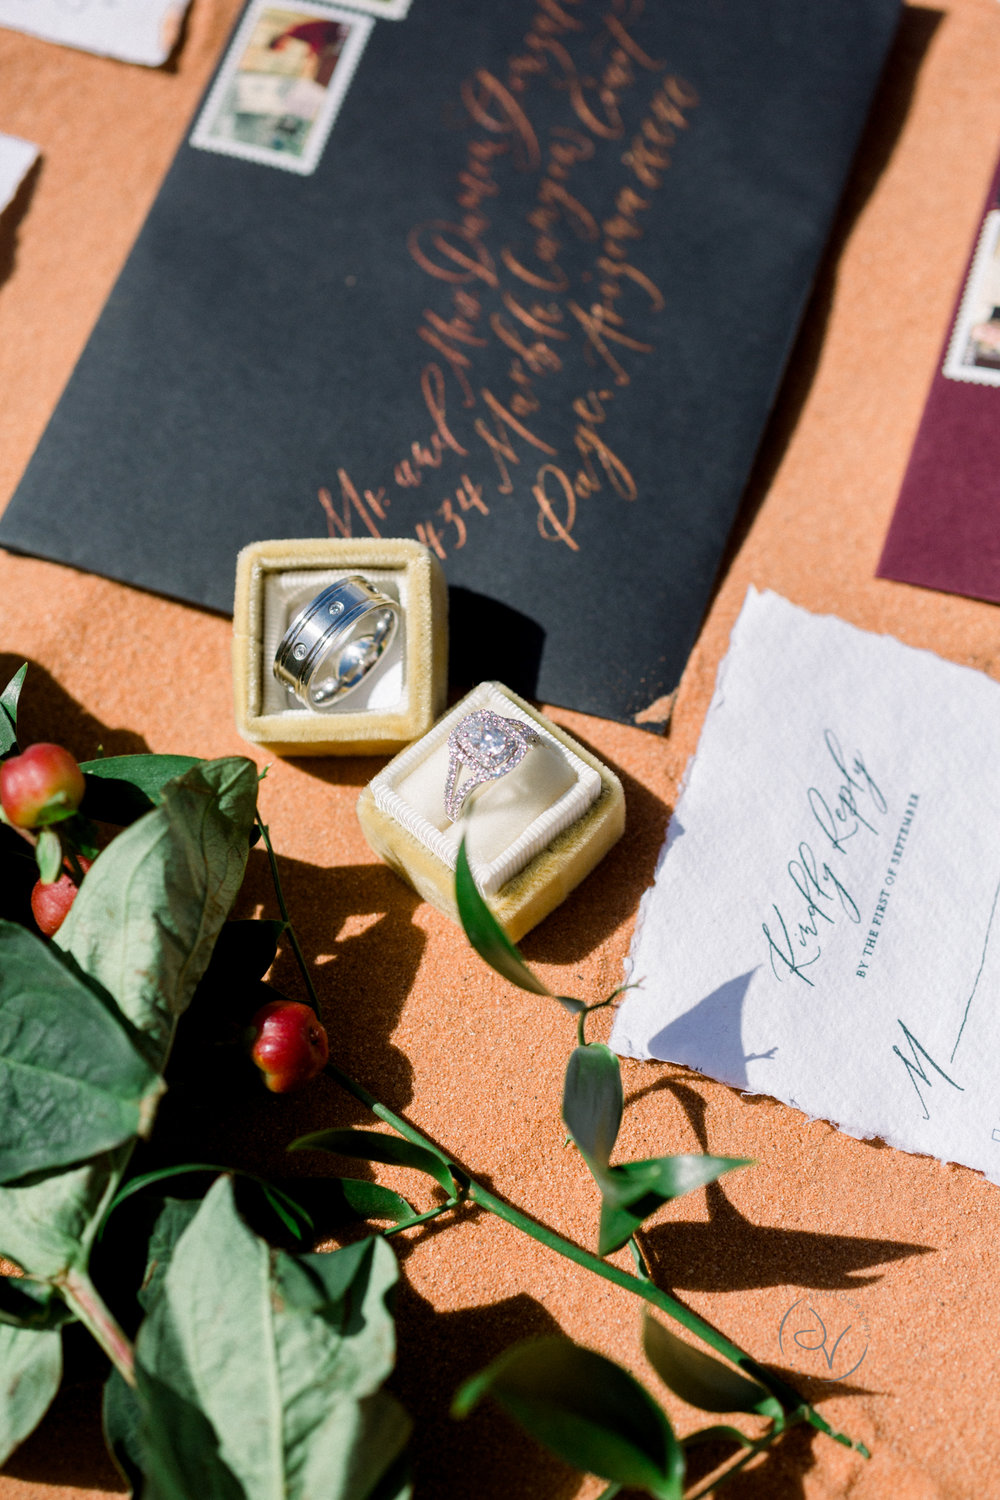 Handwritten Custom Calligraphy Invitations by Caitlin O'Bryant Design. Photo by Jordyn Vixie Photography. Boho-chic, down to earth, dark and moody, ethereal calligraphy, warm